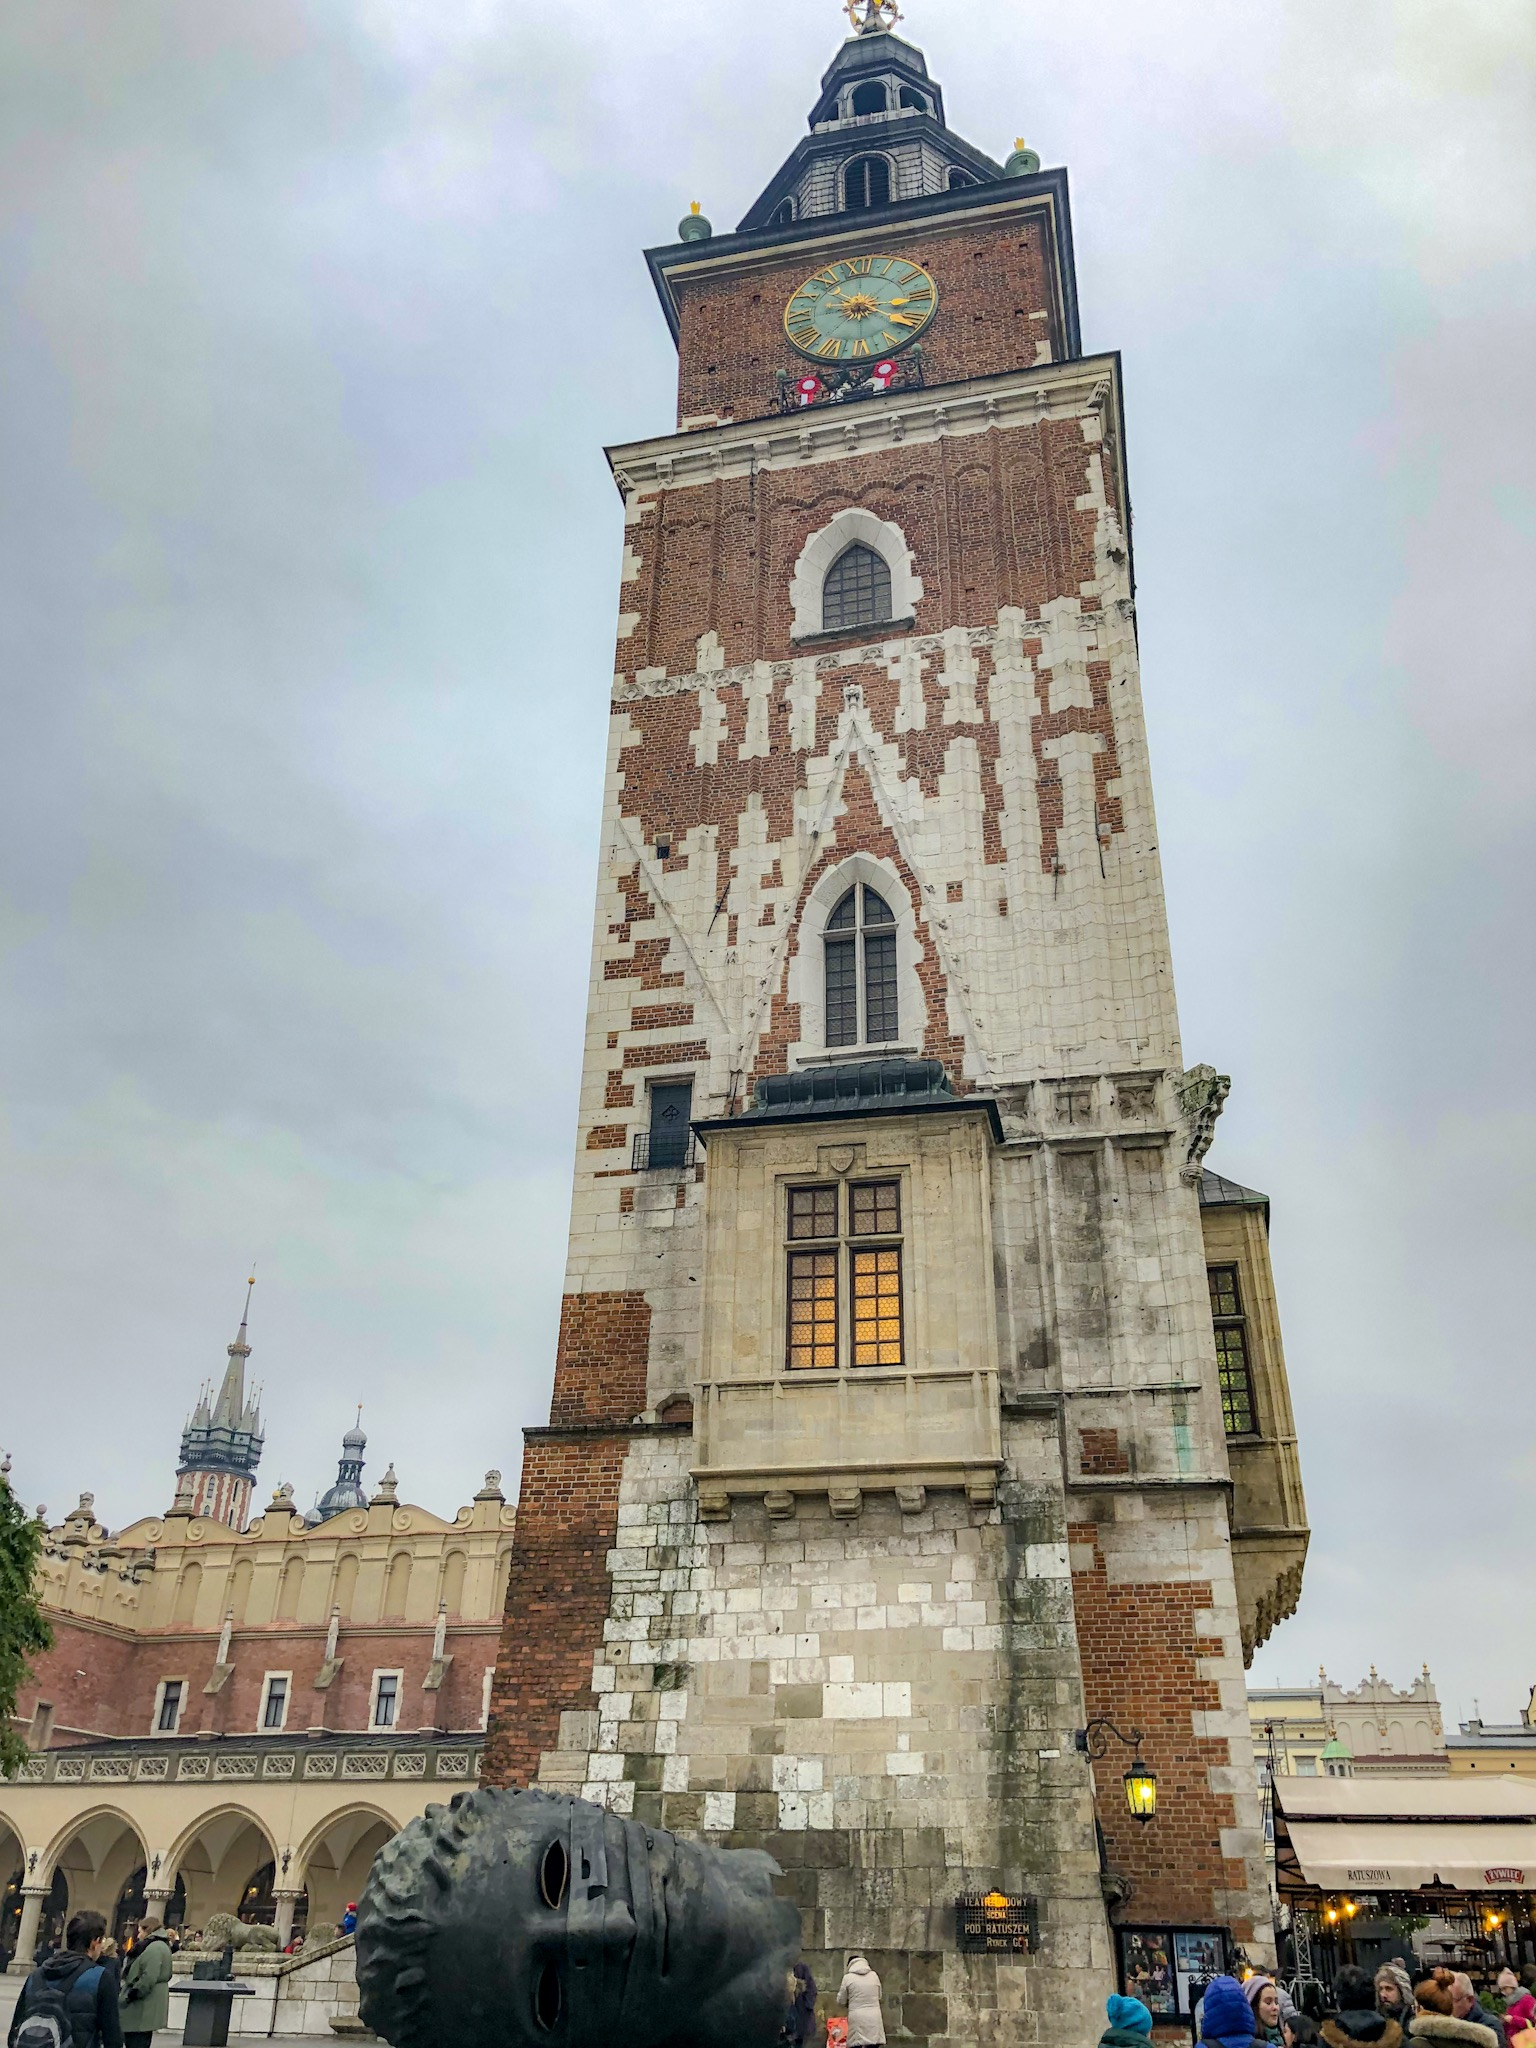 Leaning Town Hall Tower, Krakow